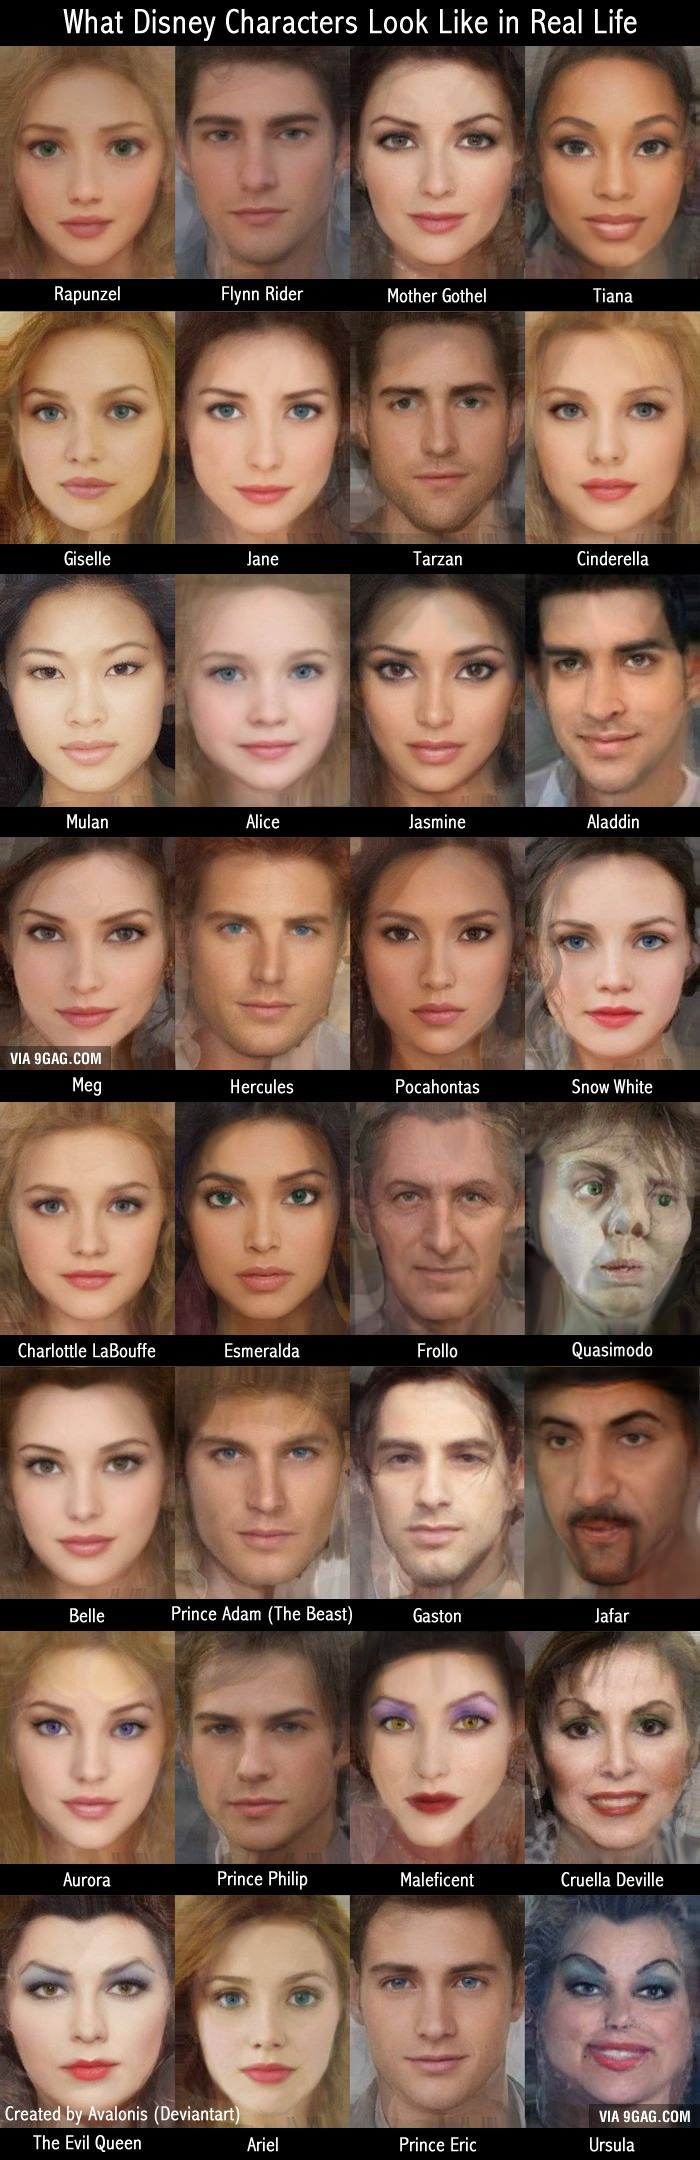 What Disney Characters Look Like in Real Life. This is amazing.